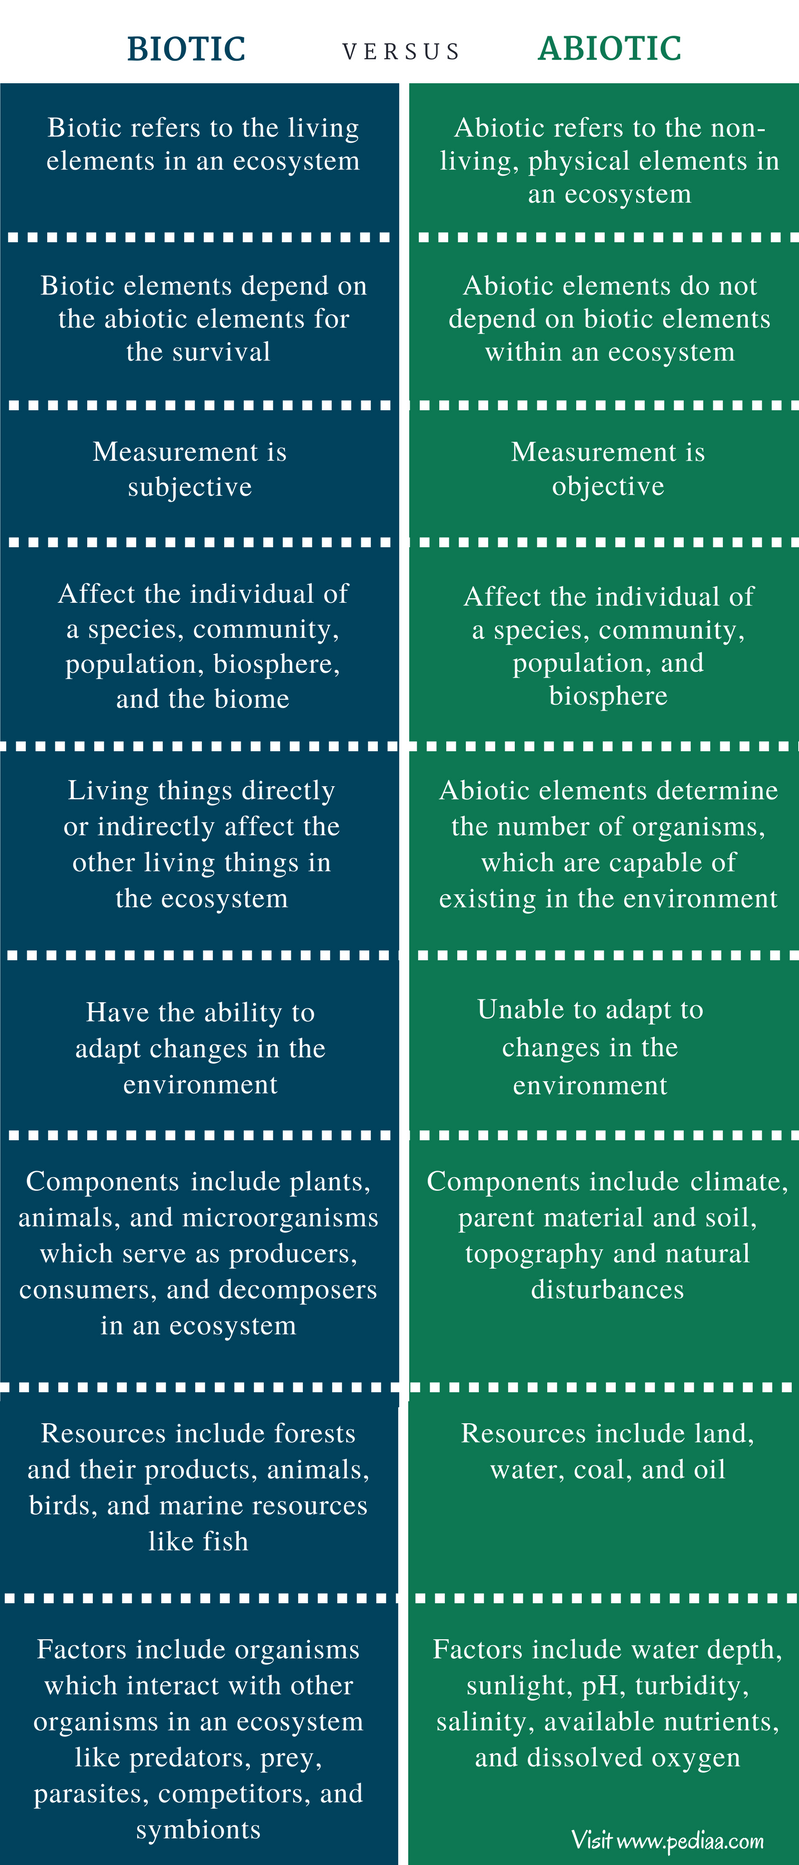 Differences Between Biotic And Abiotic Natural Resources